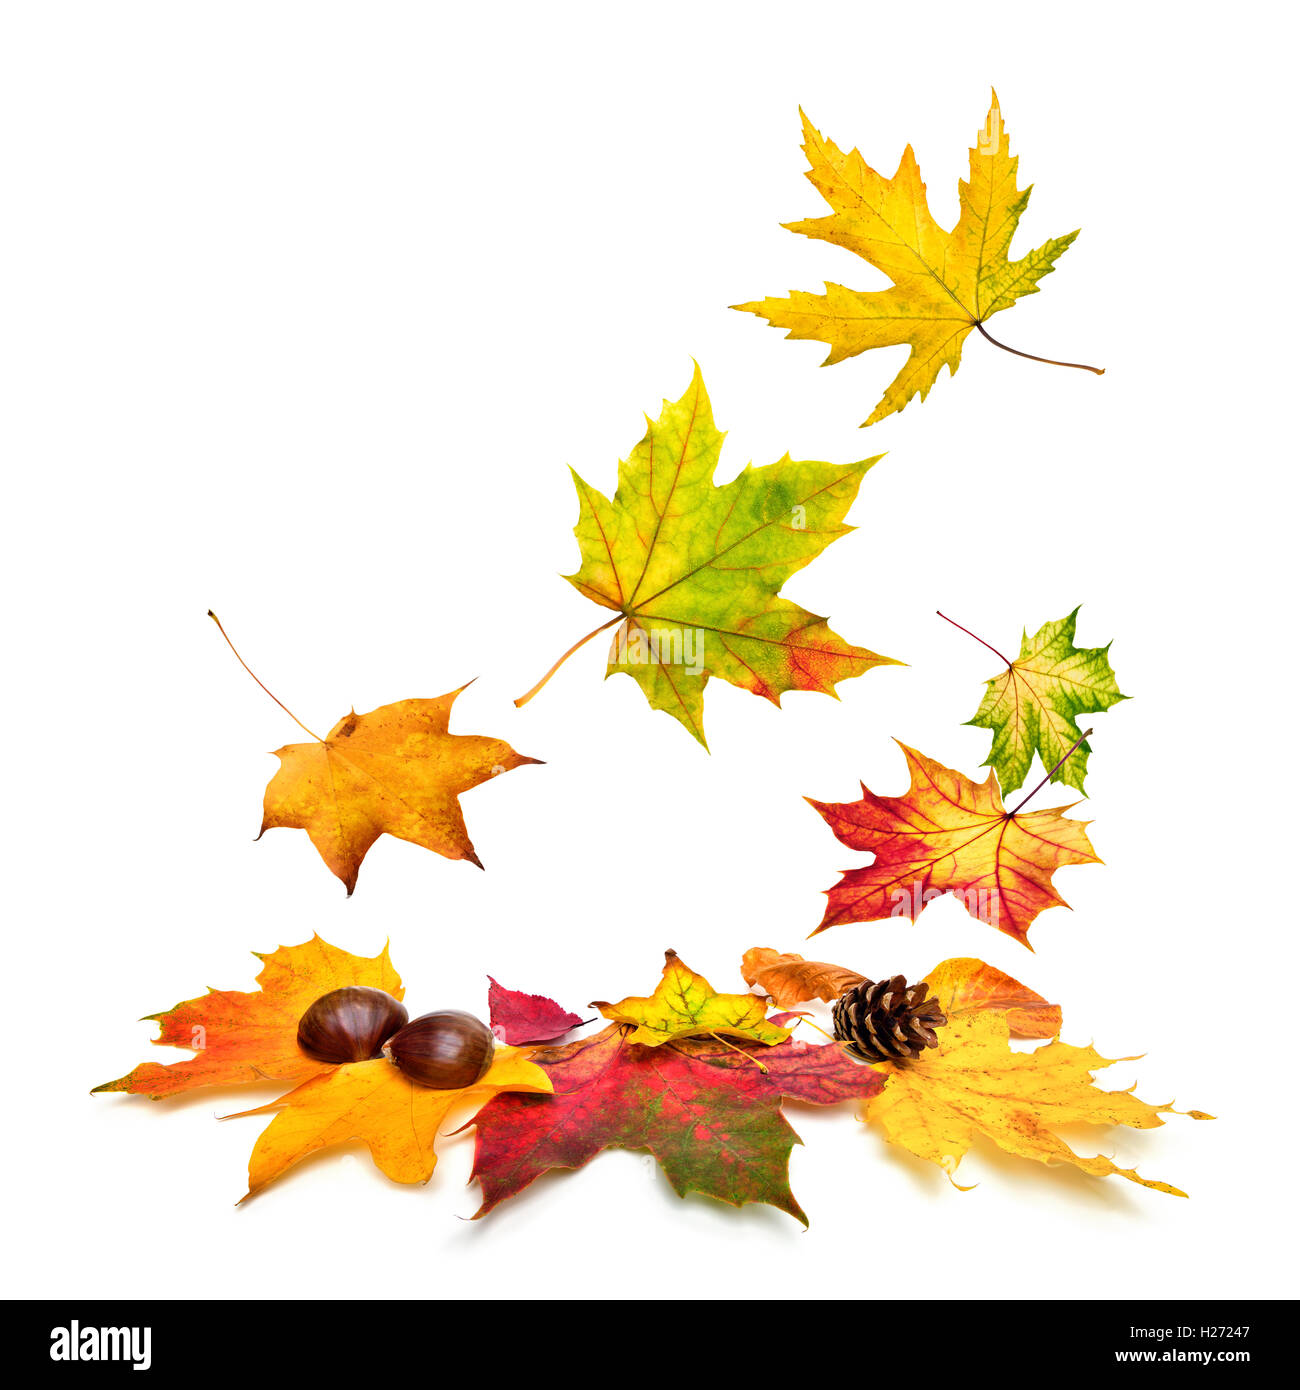 Isolated multi-colored autumn leaves gently falling down, with white copy space - Stock Image